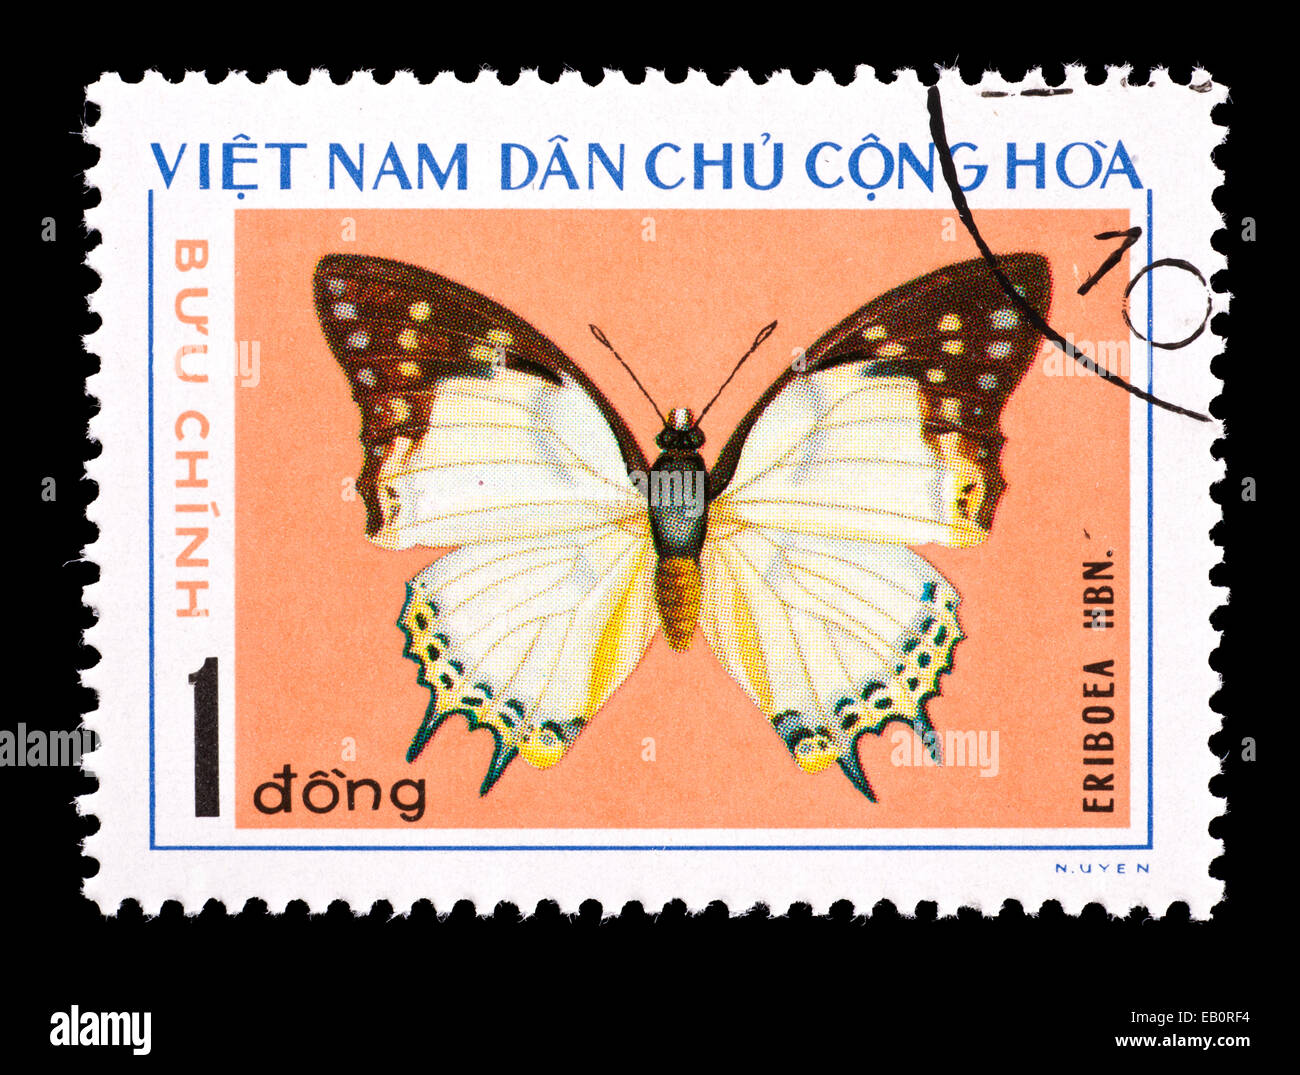 Postage Stamp From Vietnam Depicting An Eriboea Species Butterfly